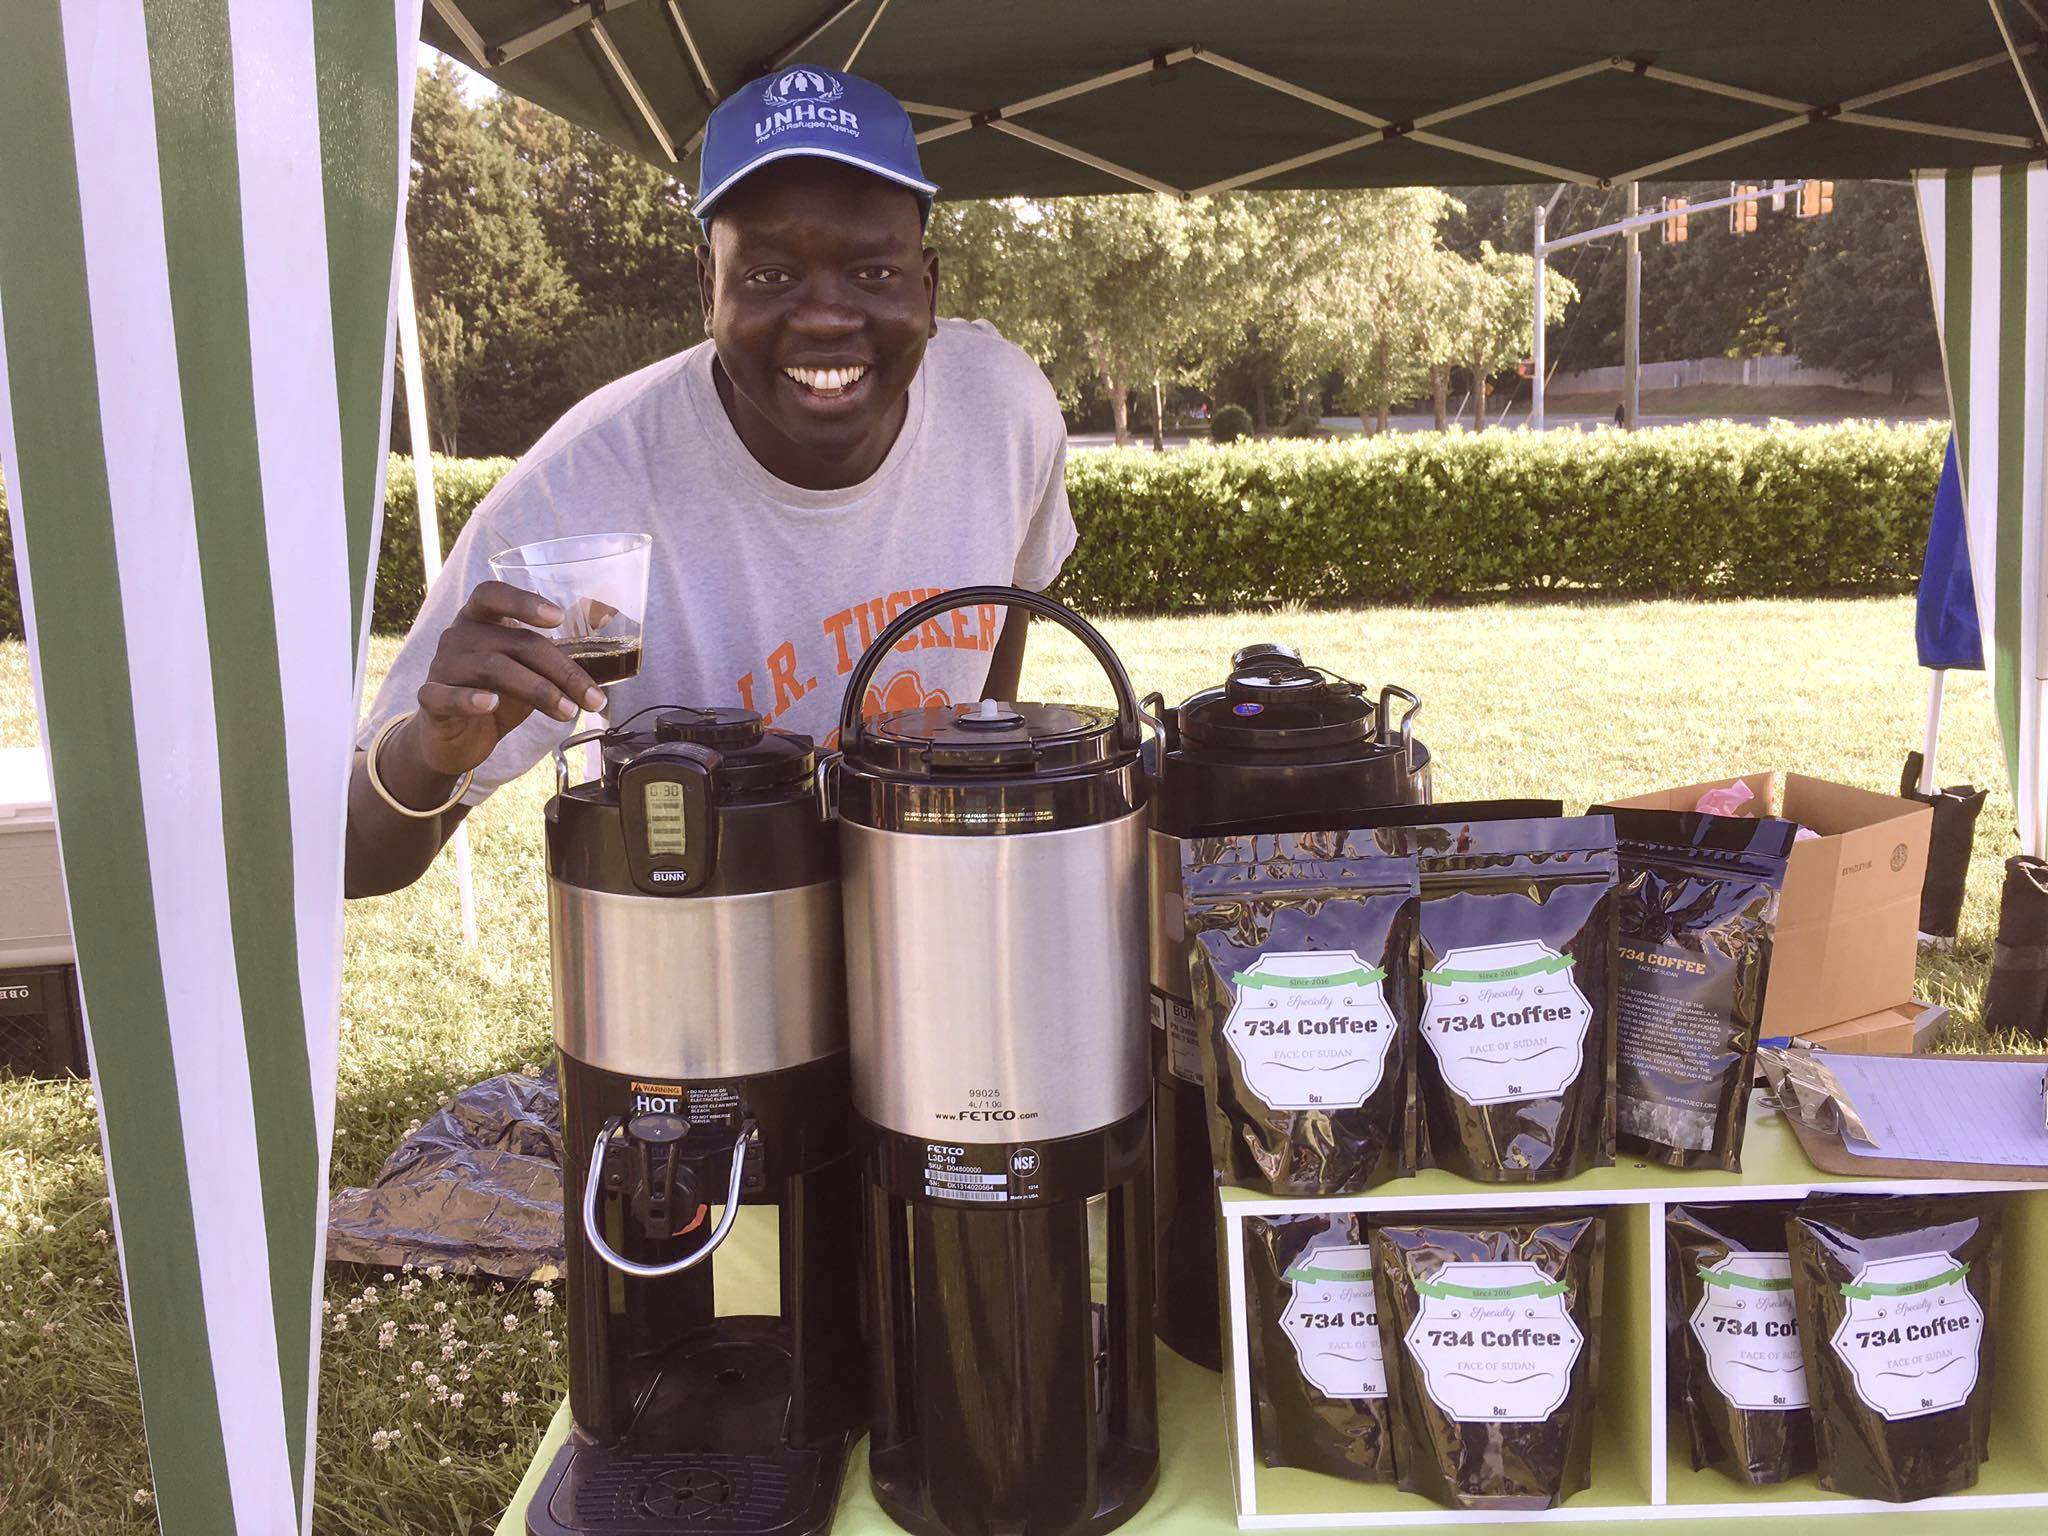 Once Displaced by Civil War, Social Entrepreneur Empowers